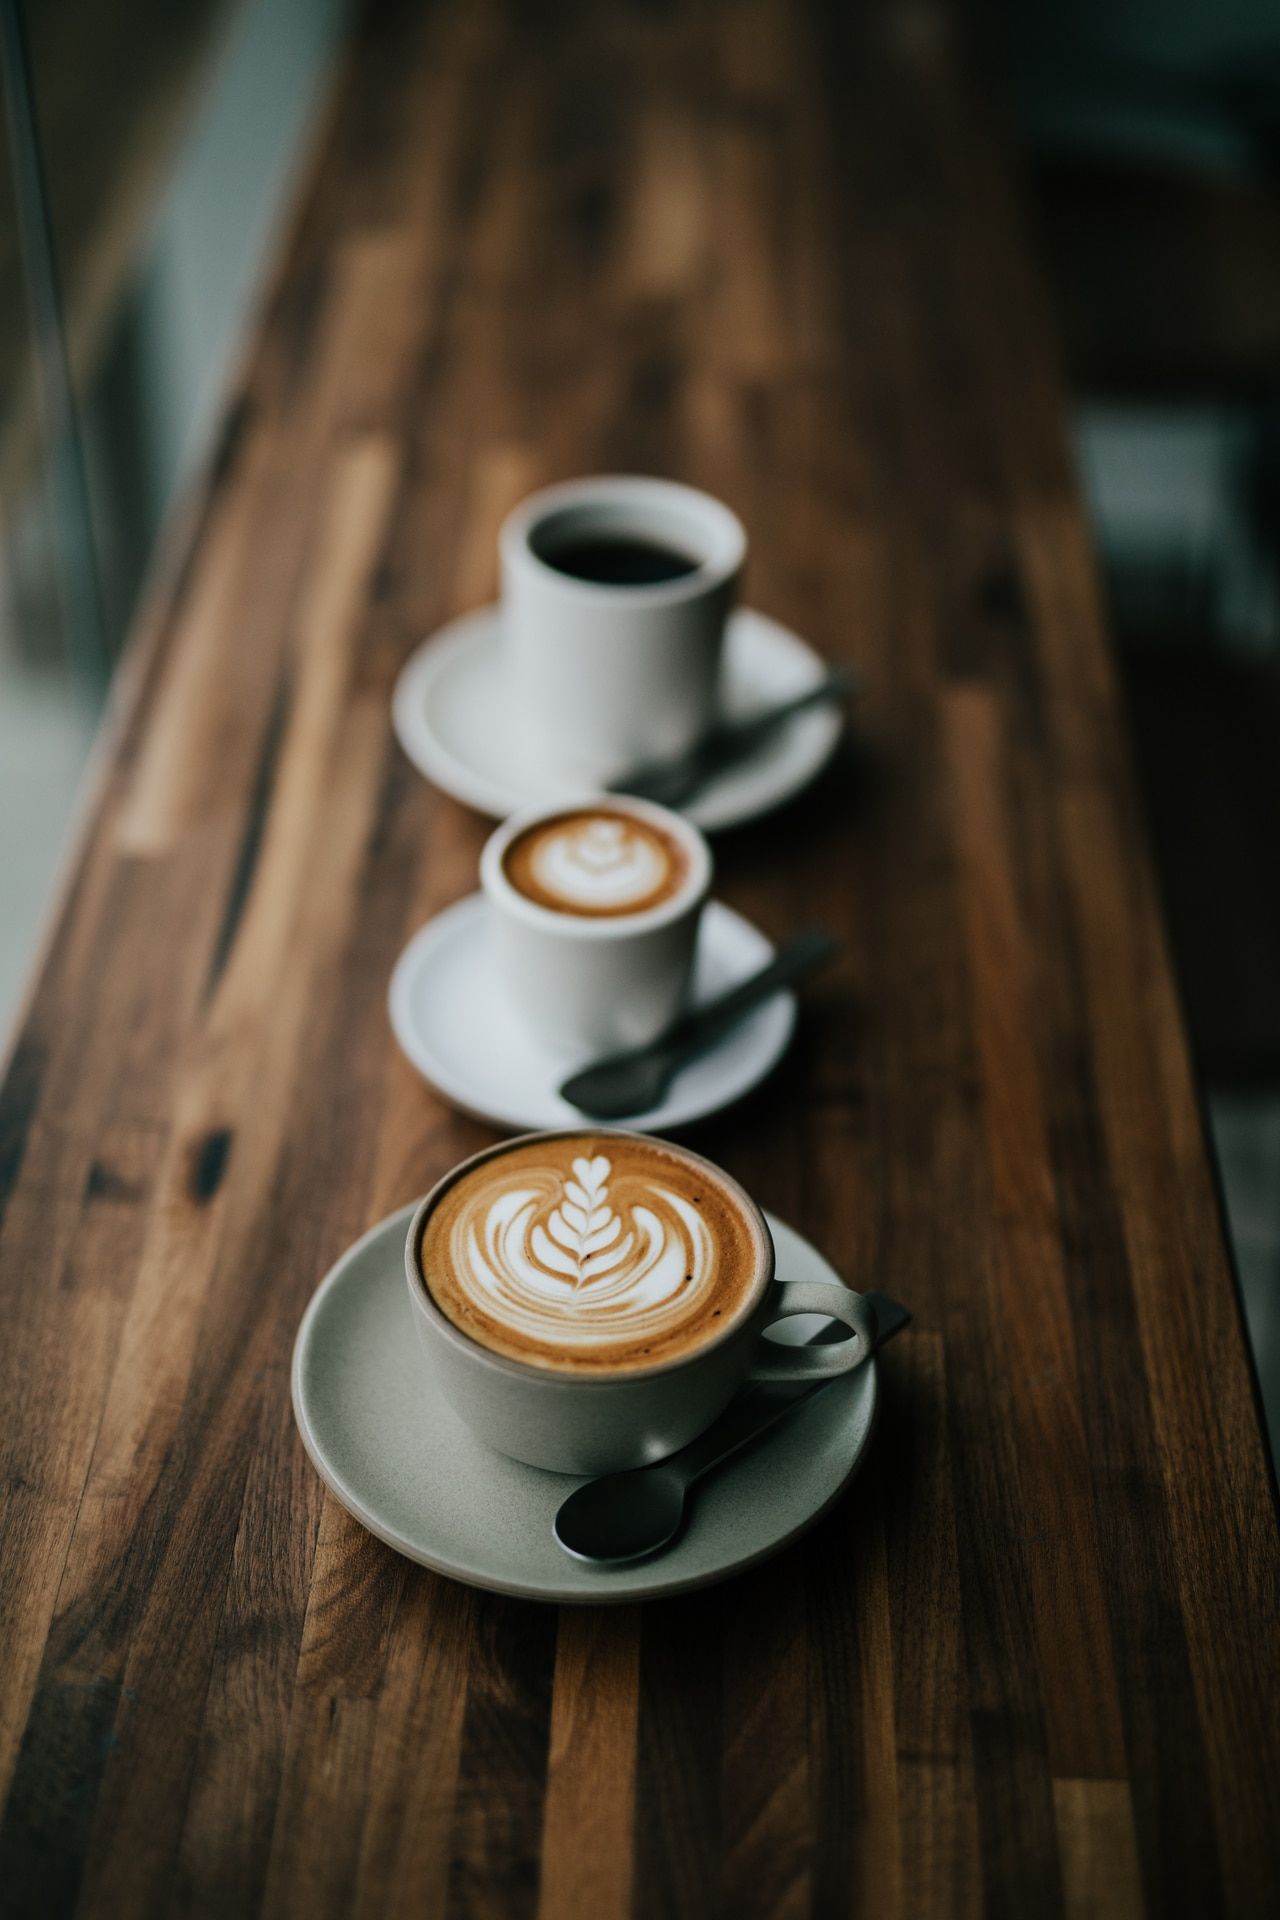 Latte art barista course